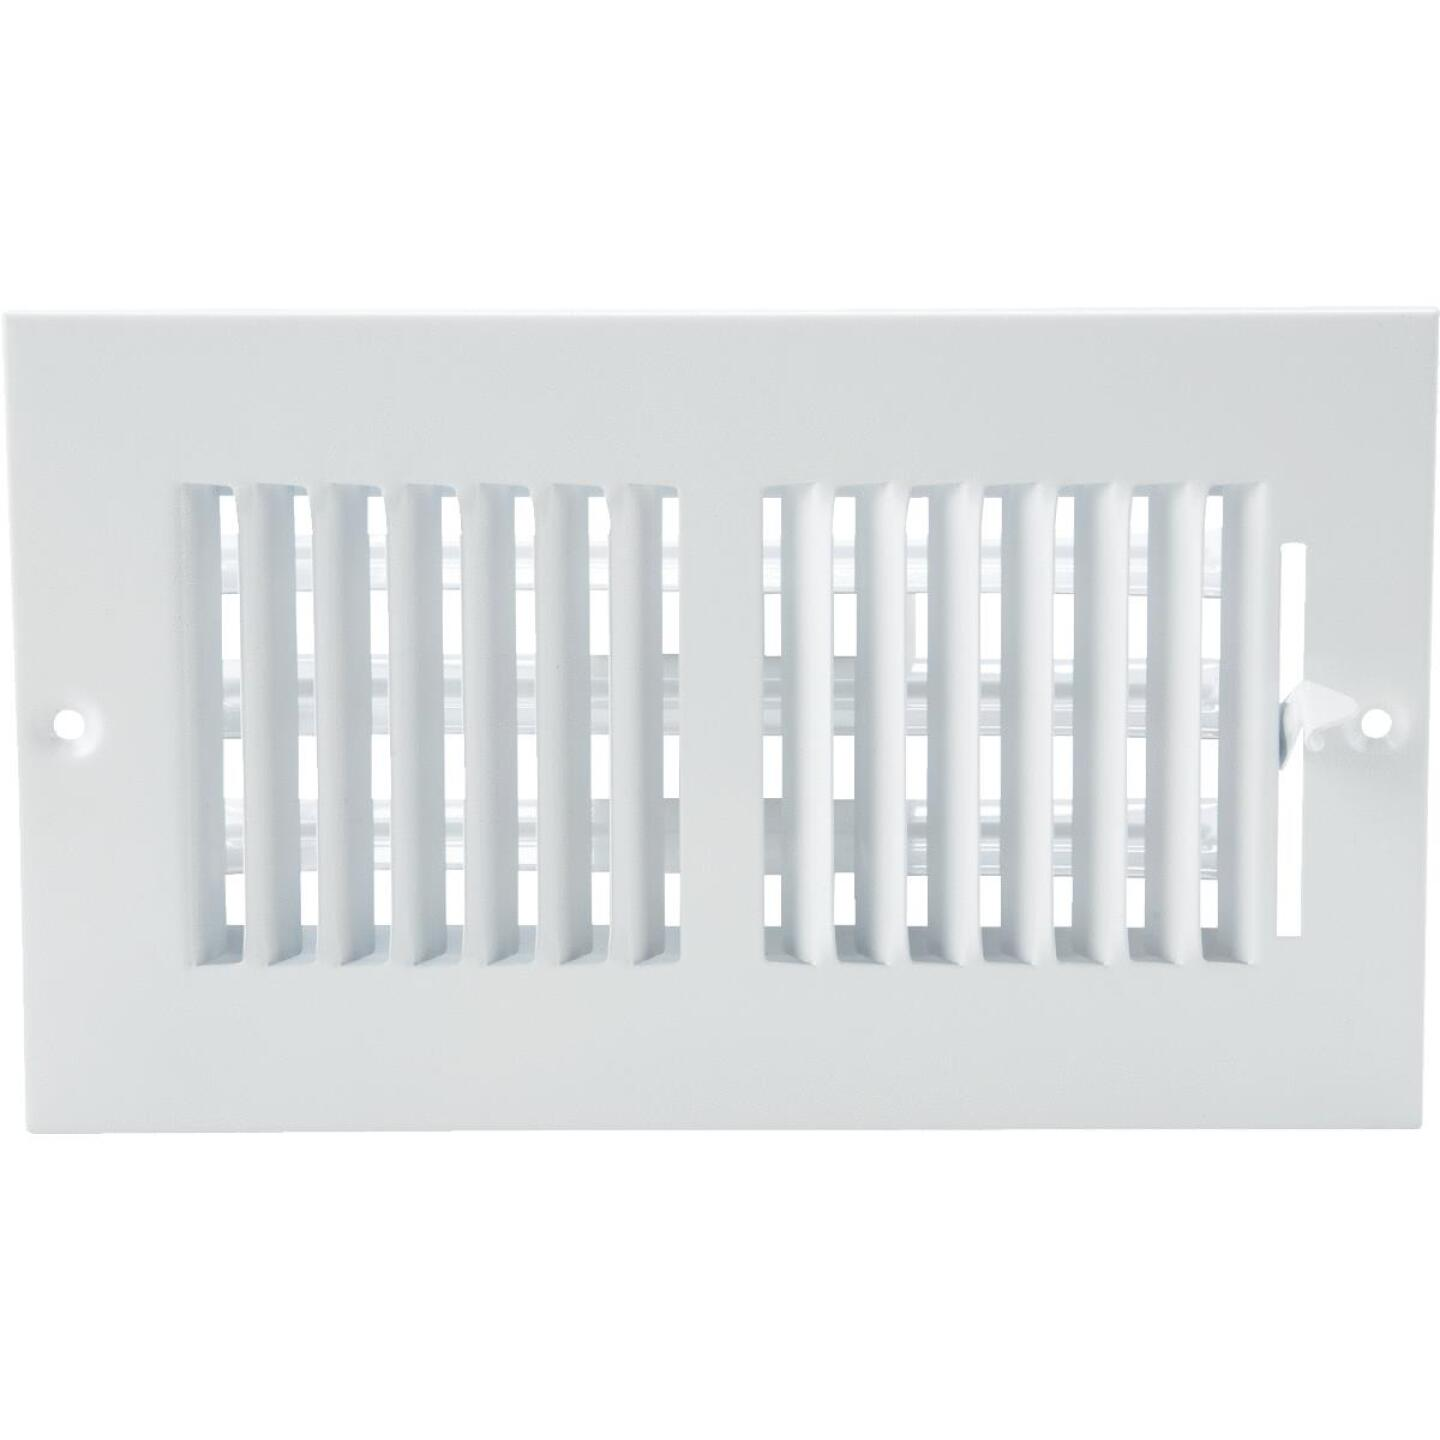 Home Impressions White Steel 5.75 In. Wall Register Image 3